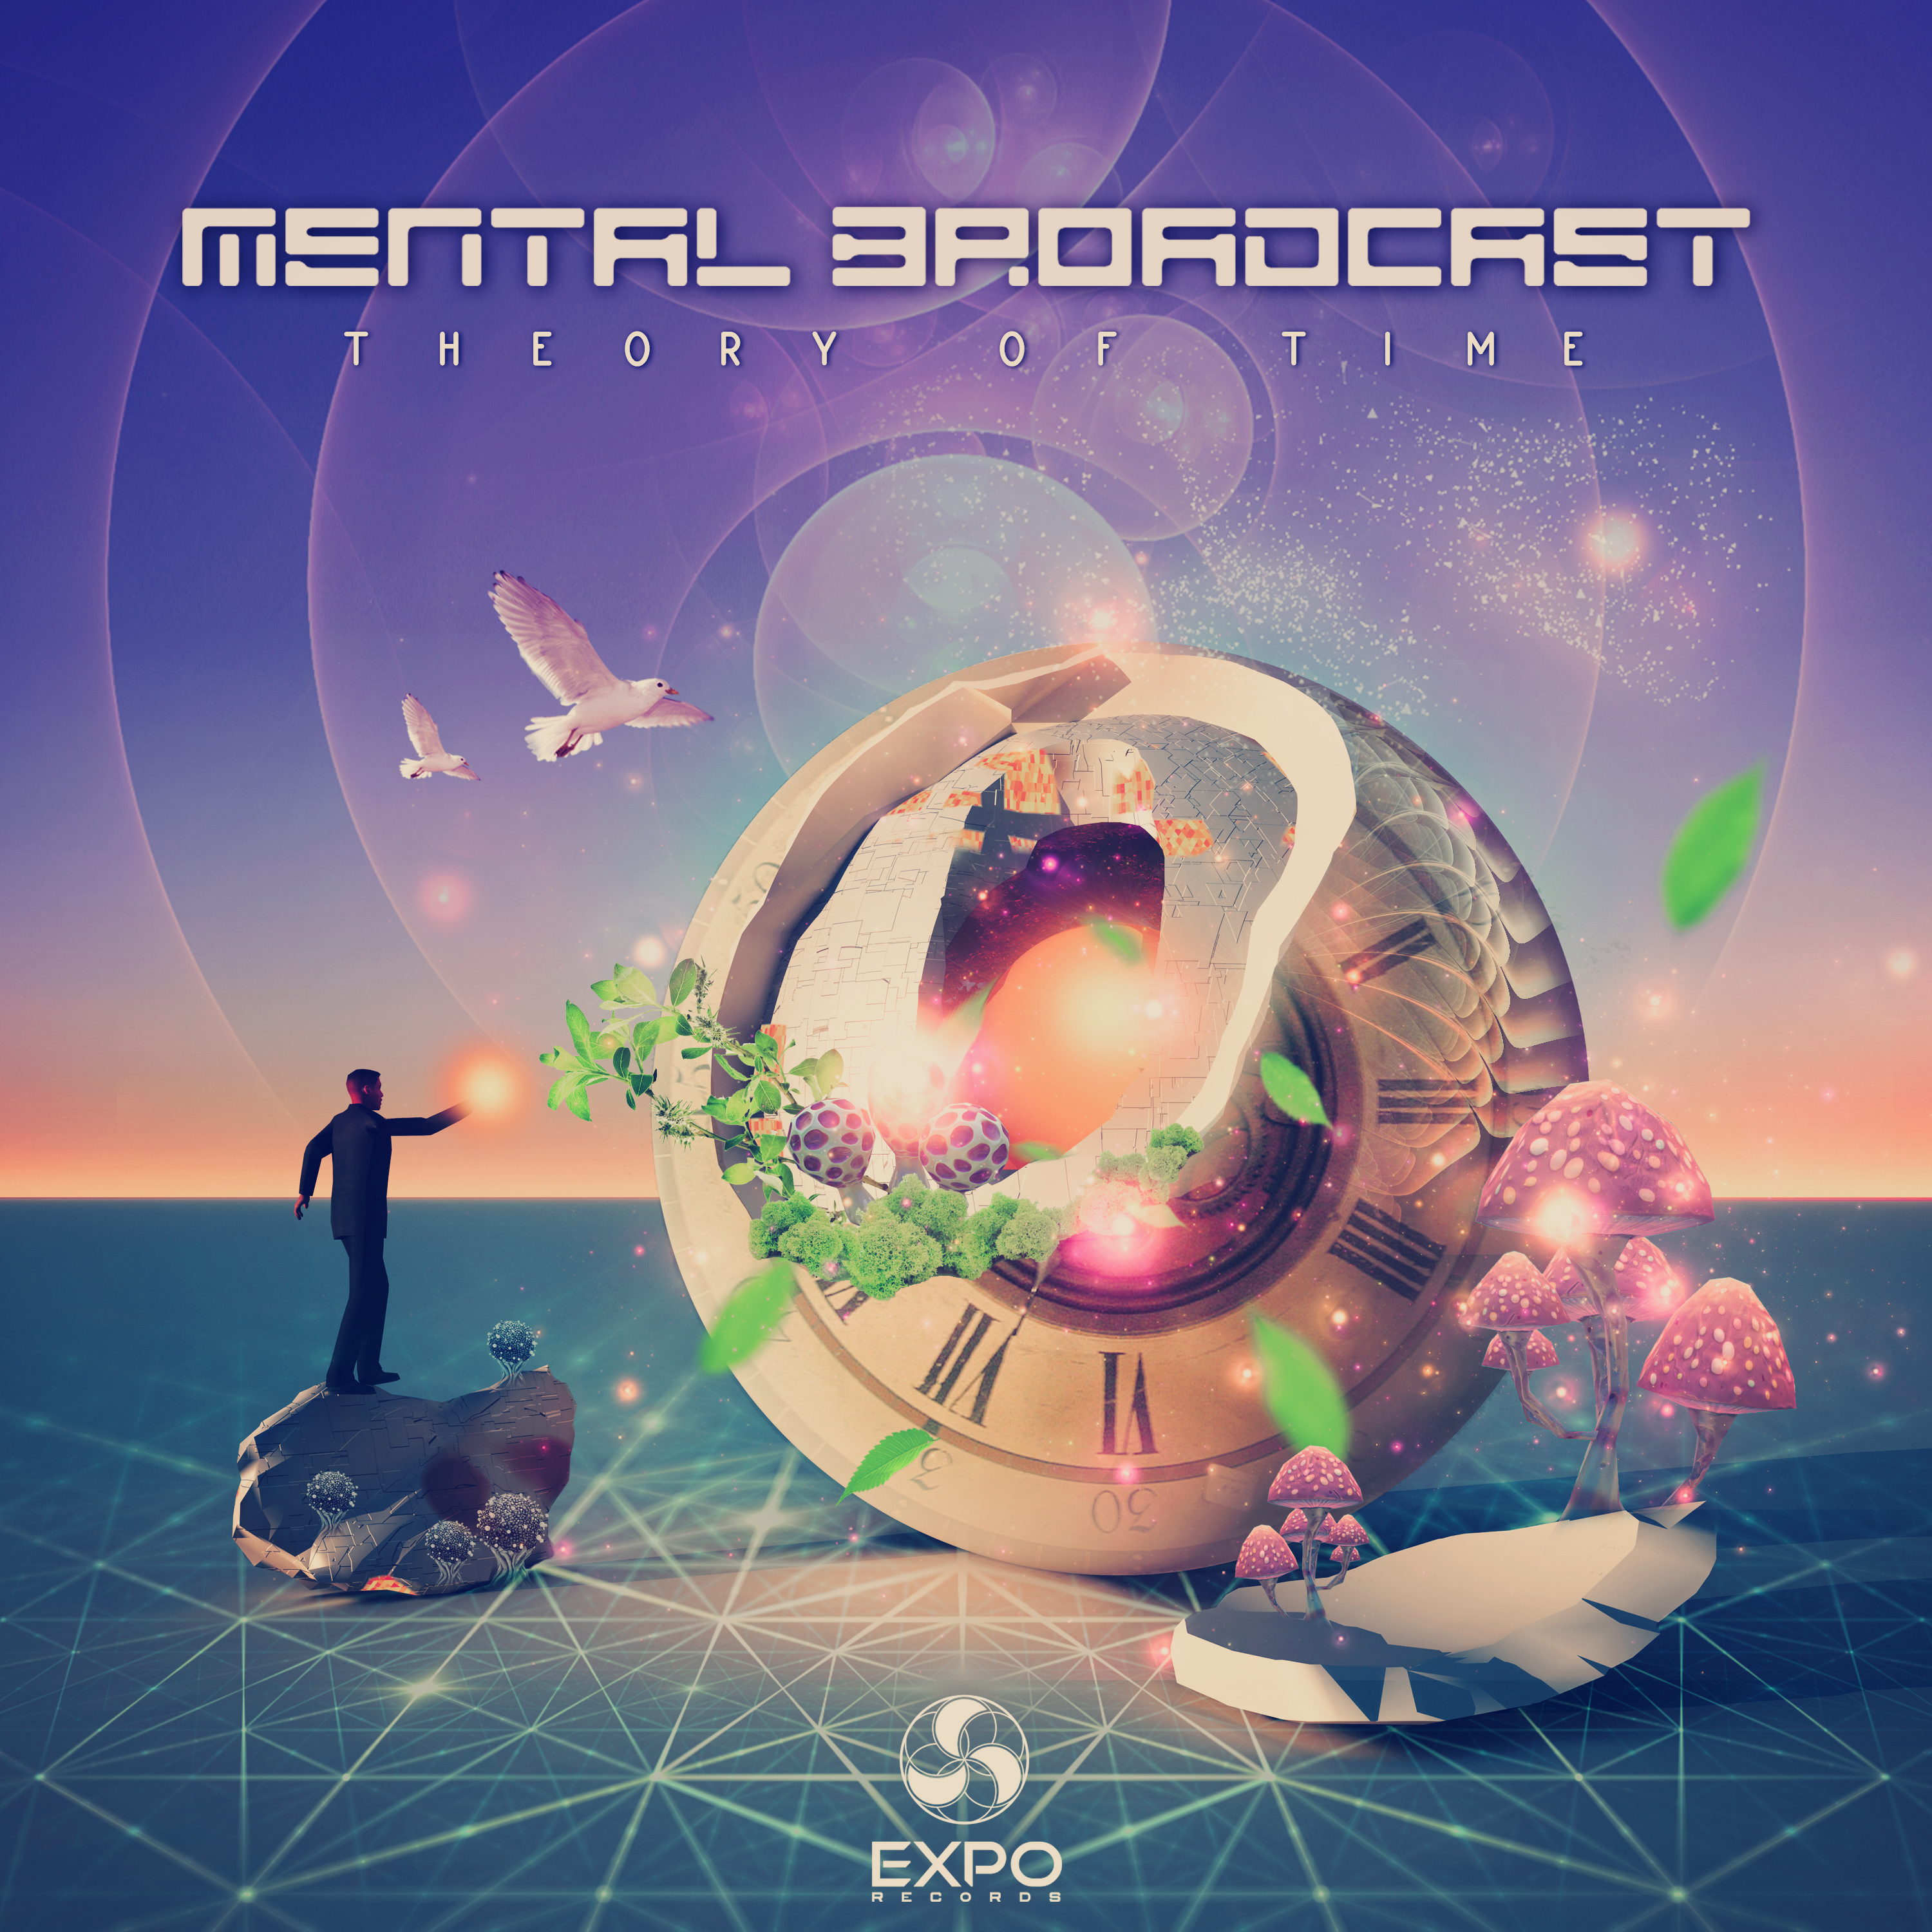 Mental Broadcast - Theory of Time